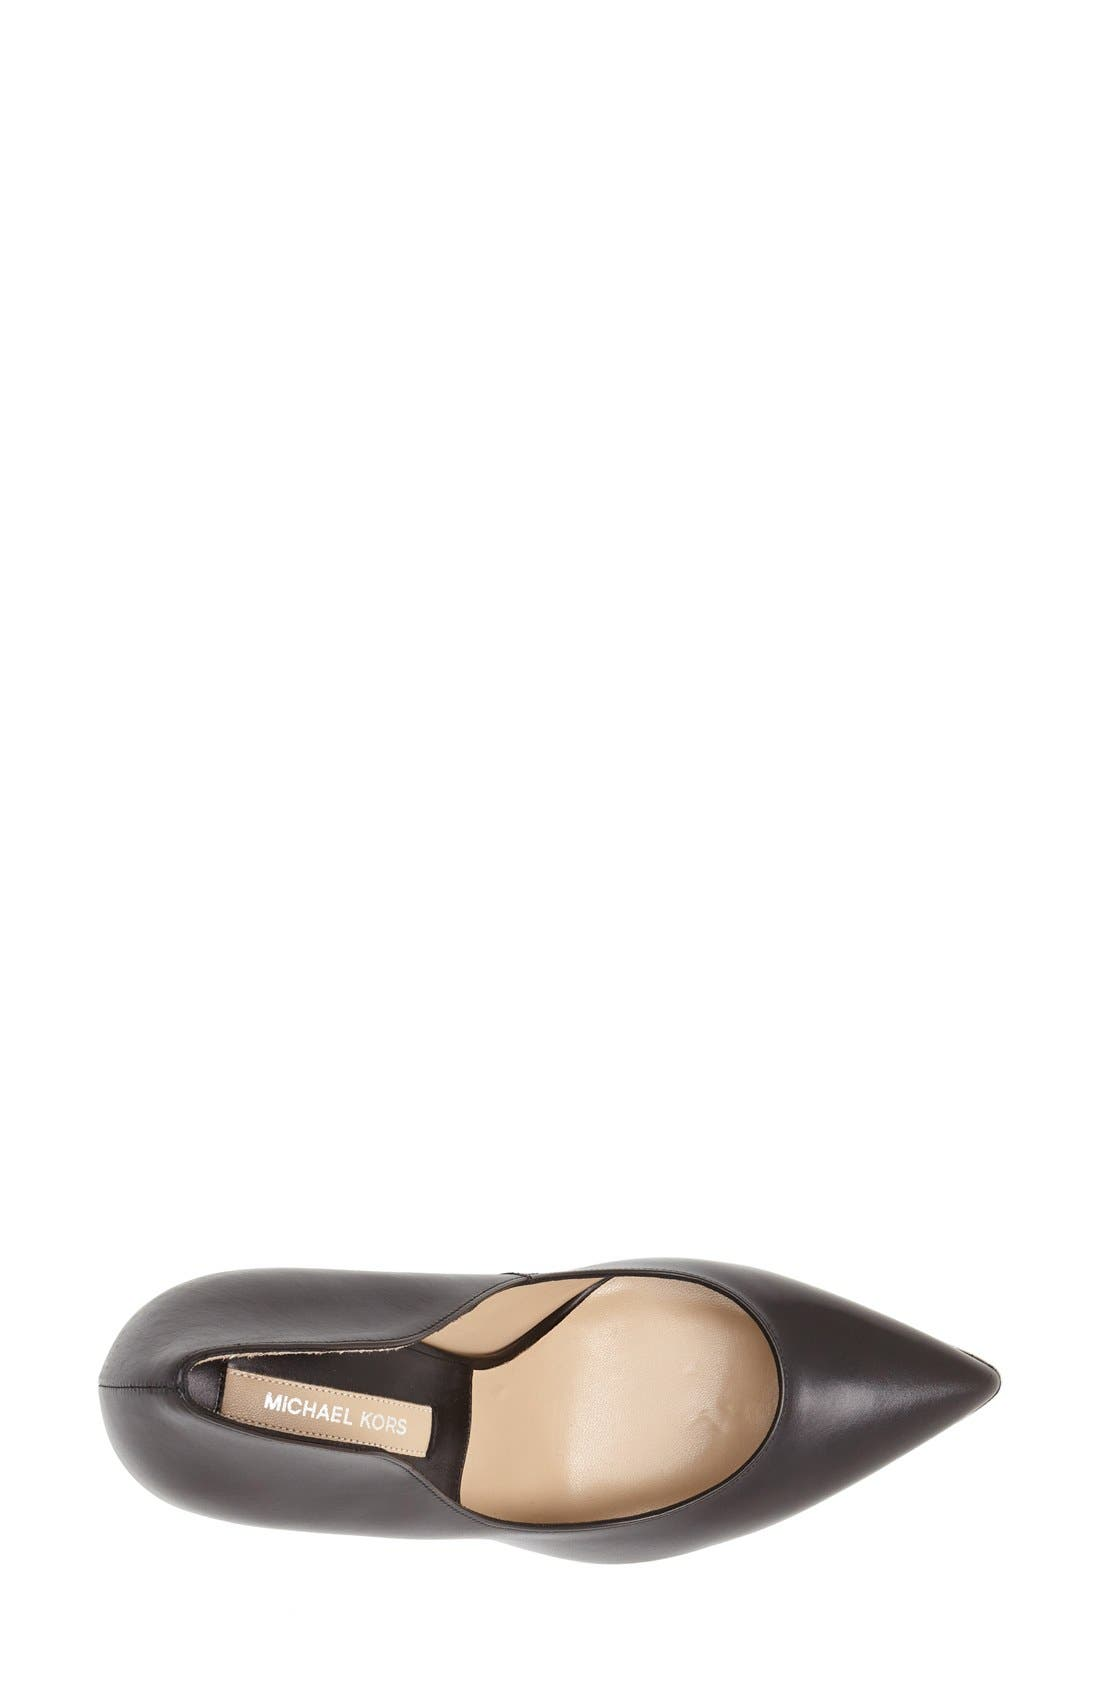 Alternate Image 3  - Michael Kors 'Avra' Pointy Toe Pump (Women)